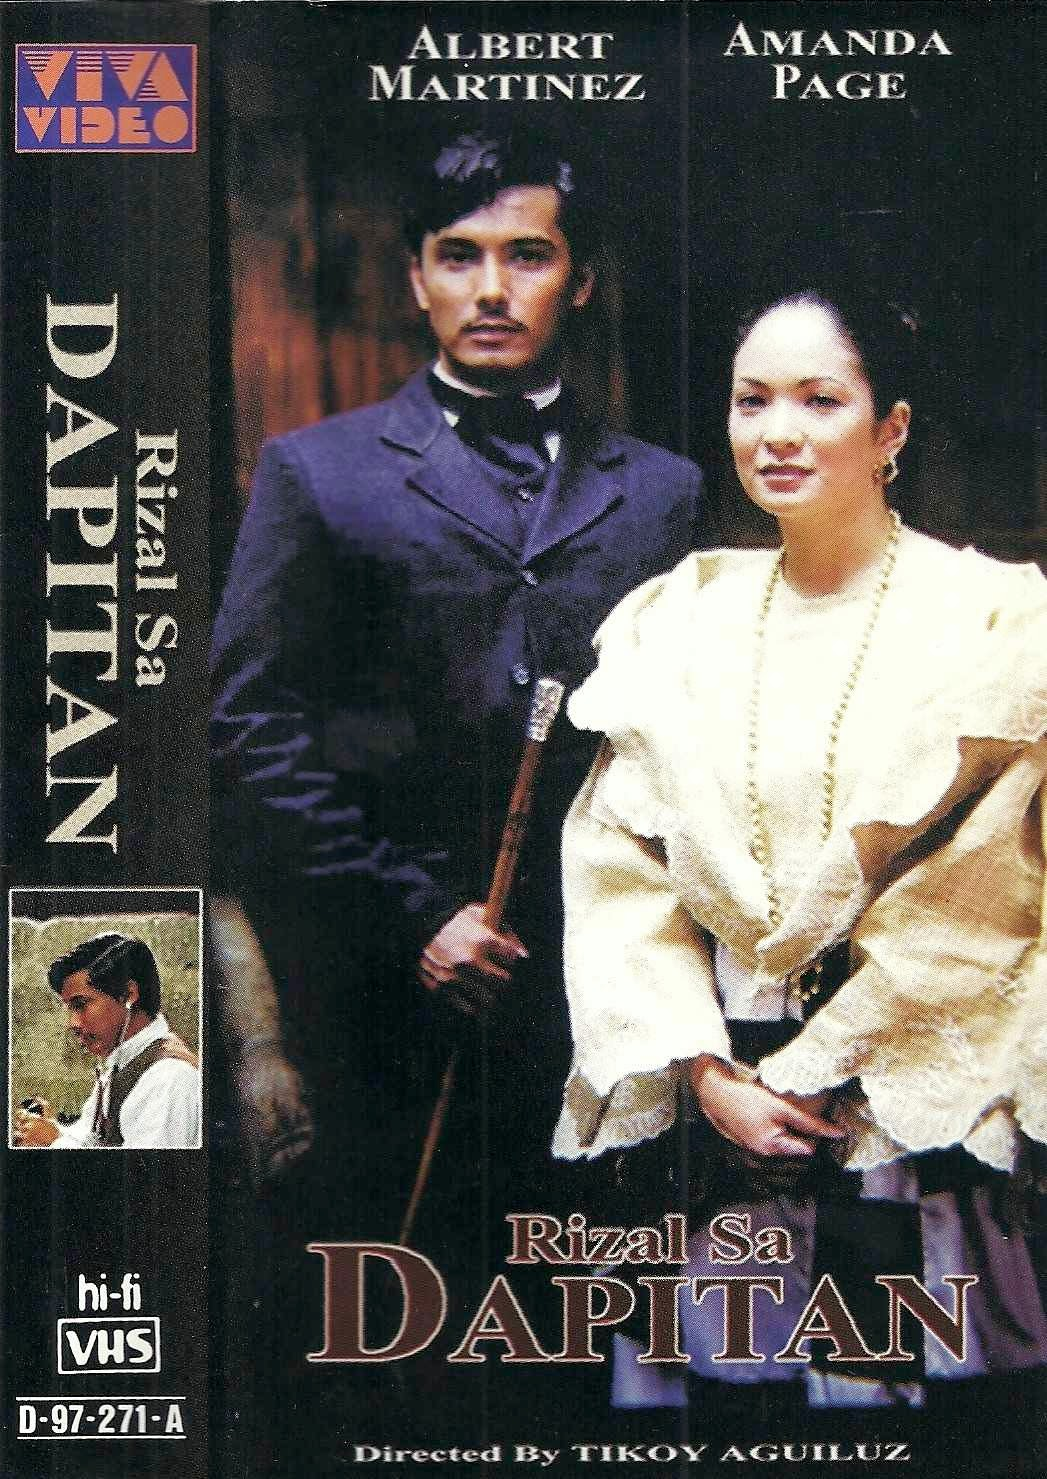 movie analysis jose rizal Noli me tangere is a 19th century novel by jose rizal that dramatically showcases the persecution of a socialite in the philippines by religious hypocrisy and corruption.